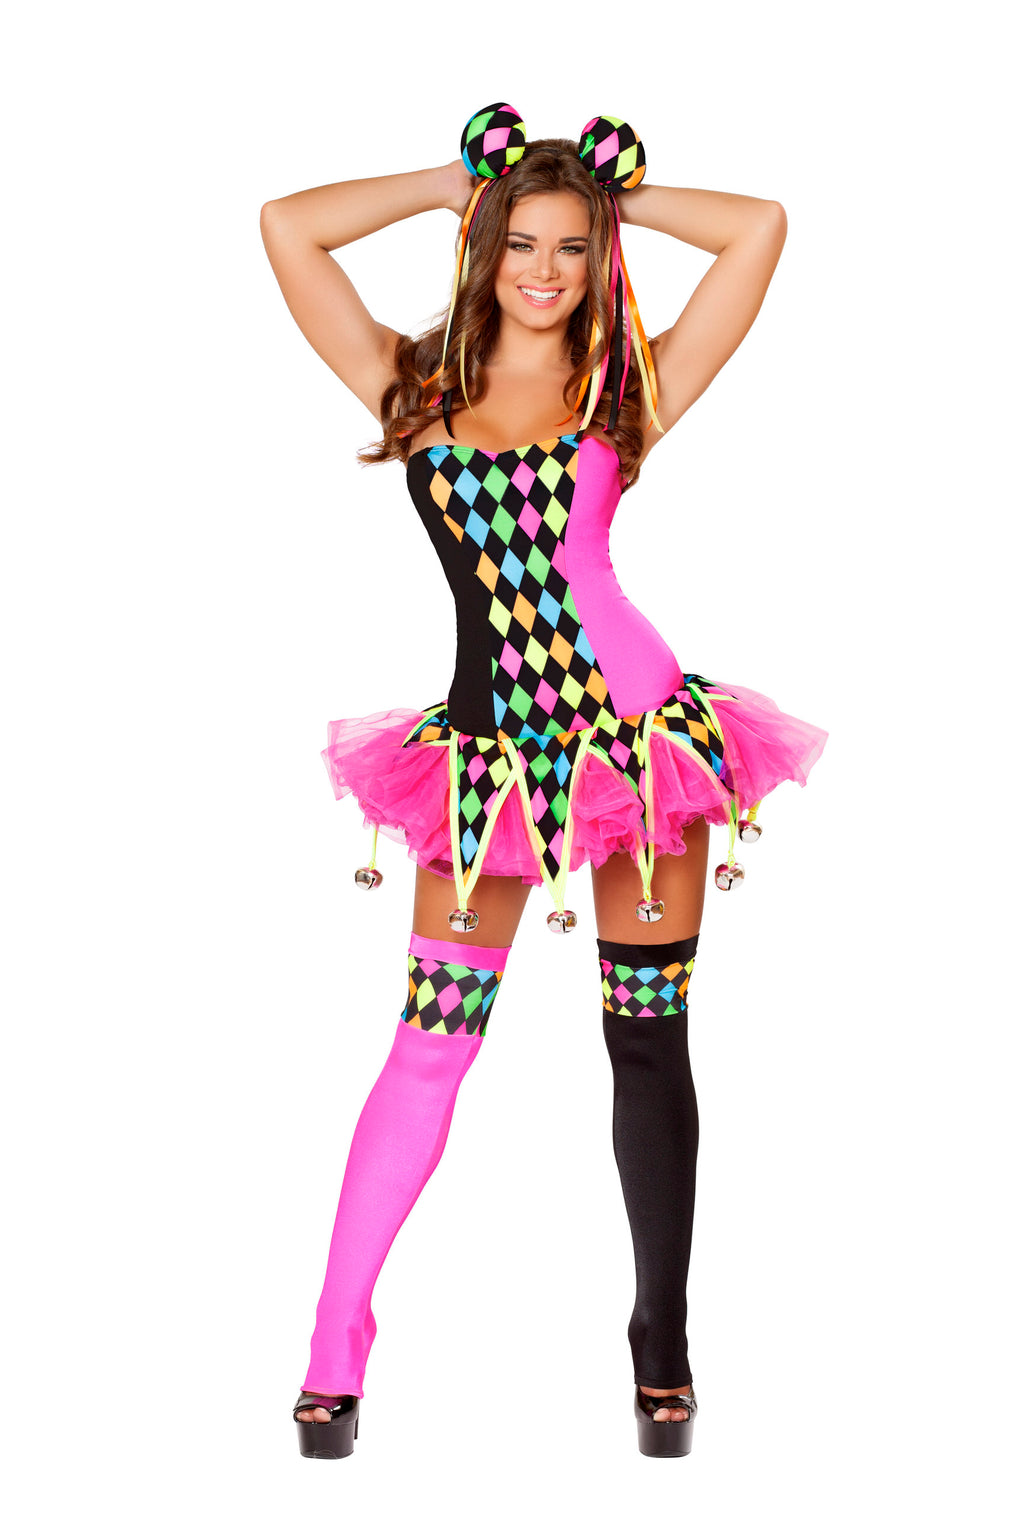 3-Piece-Court-Jester-Circus-Clown-Polka-Dot-Body-Suit-&-Tutu-Costume